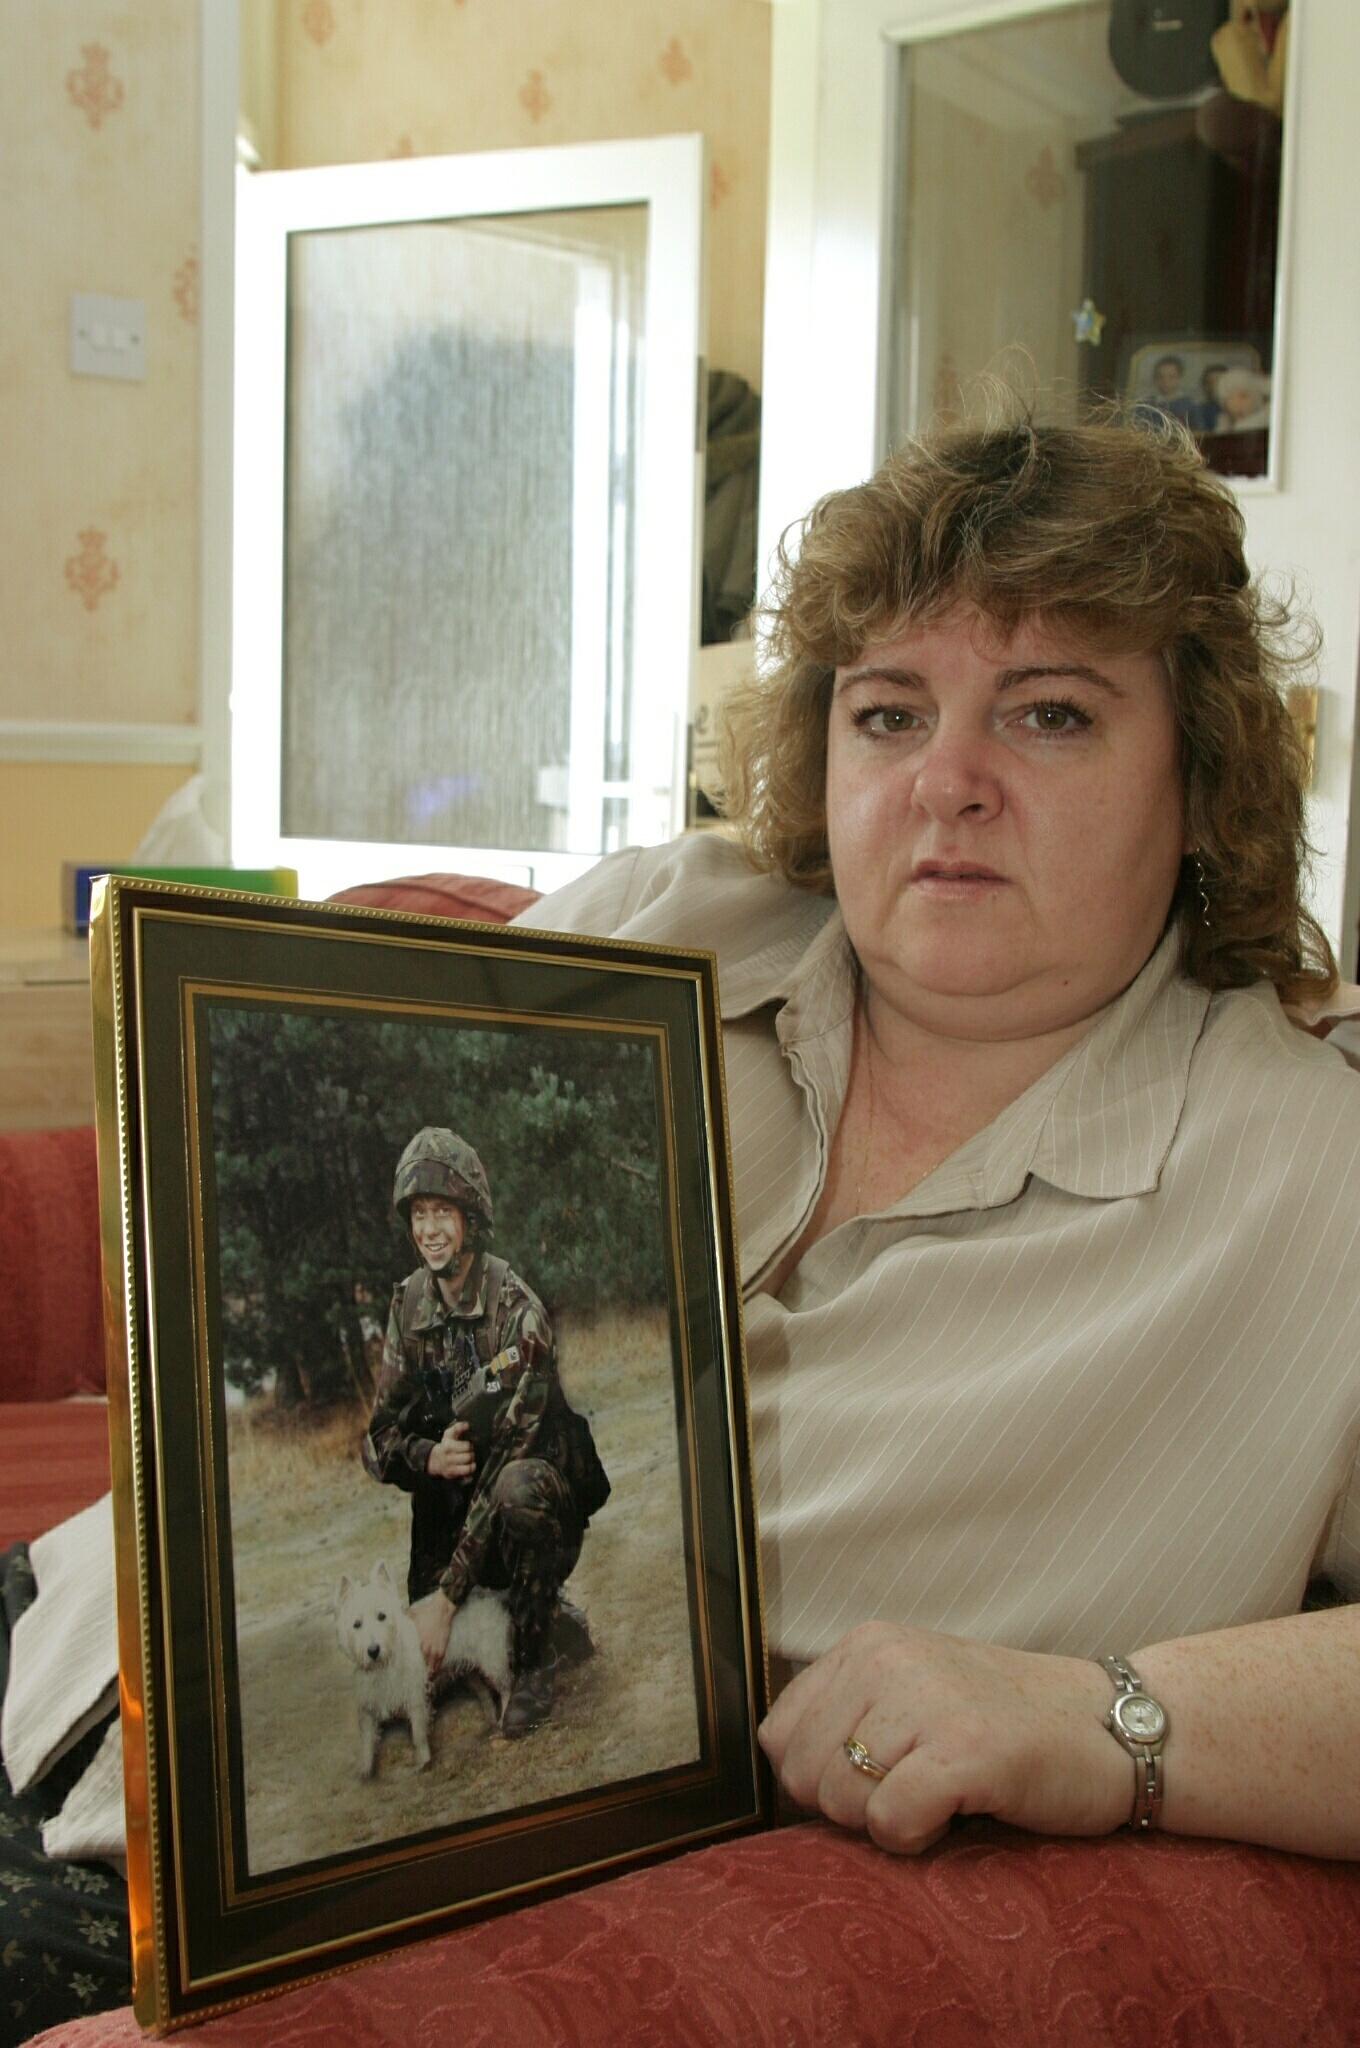 Pictured at home in Perth today, Friday 25th March 2005, is Yvonne Collinson with a picture of her son James.